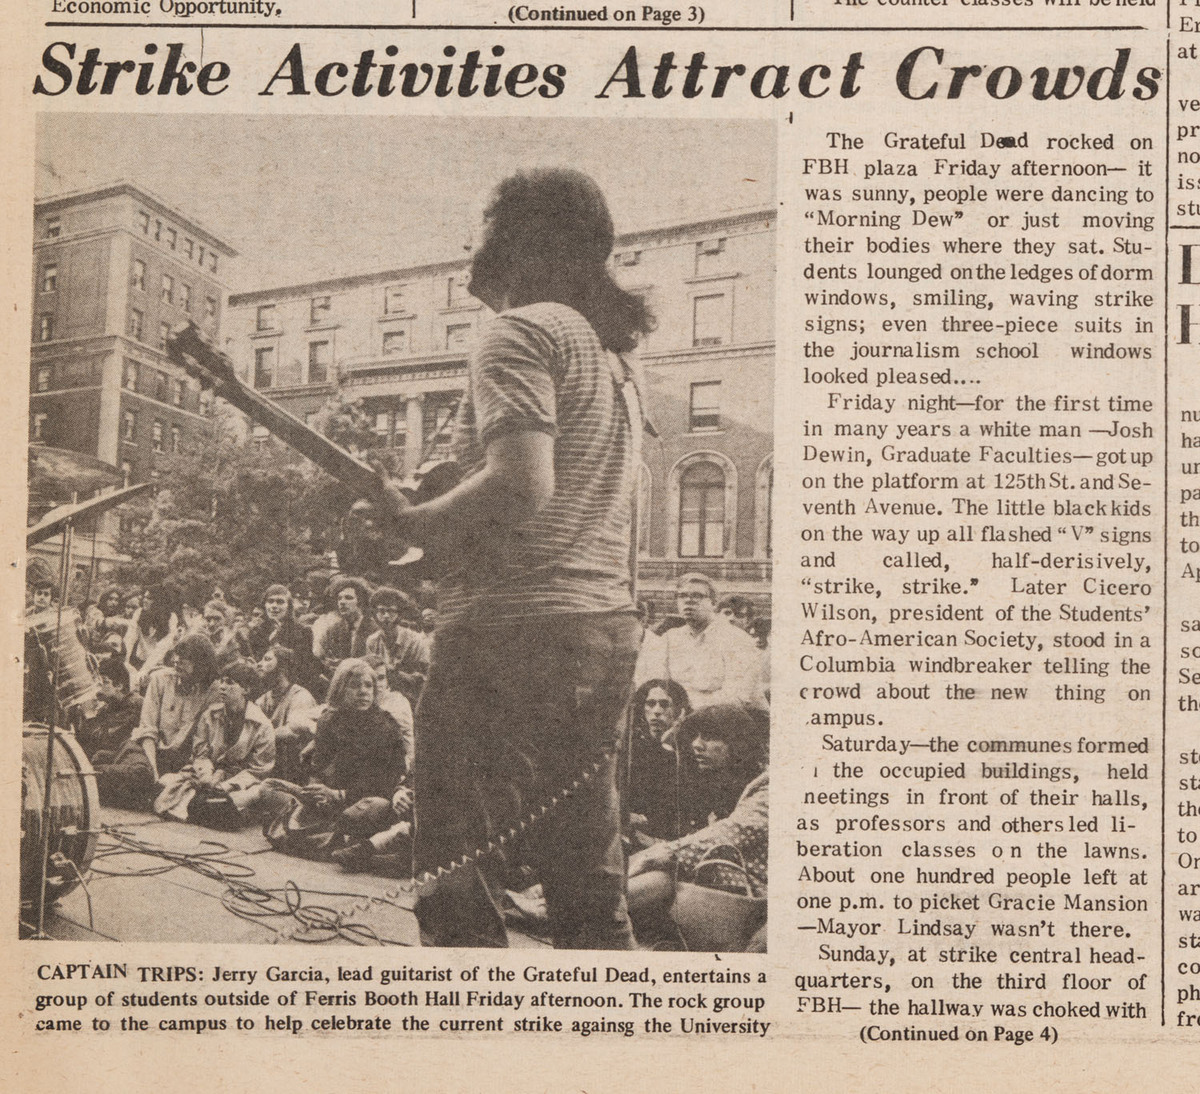 """Strike Activities Attract Crowds"", p.1 and 4"